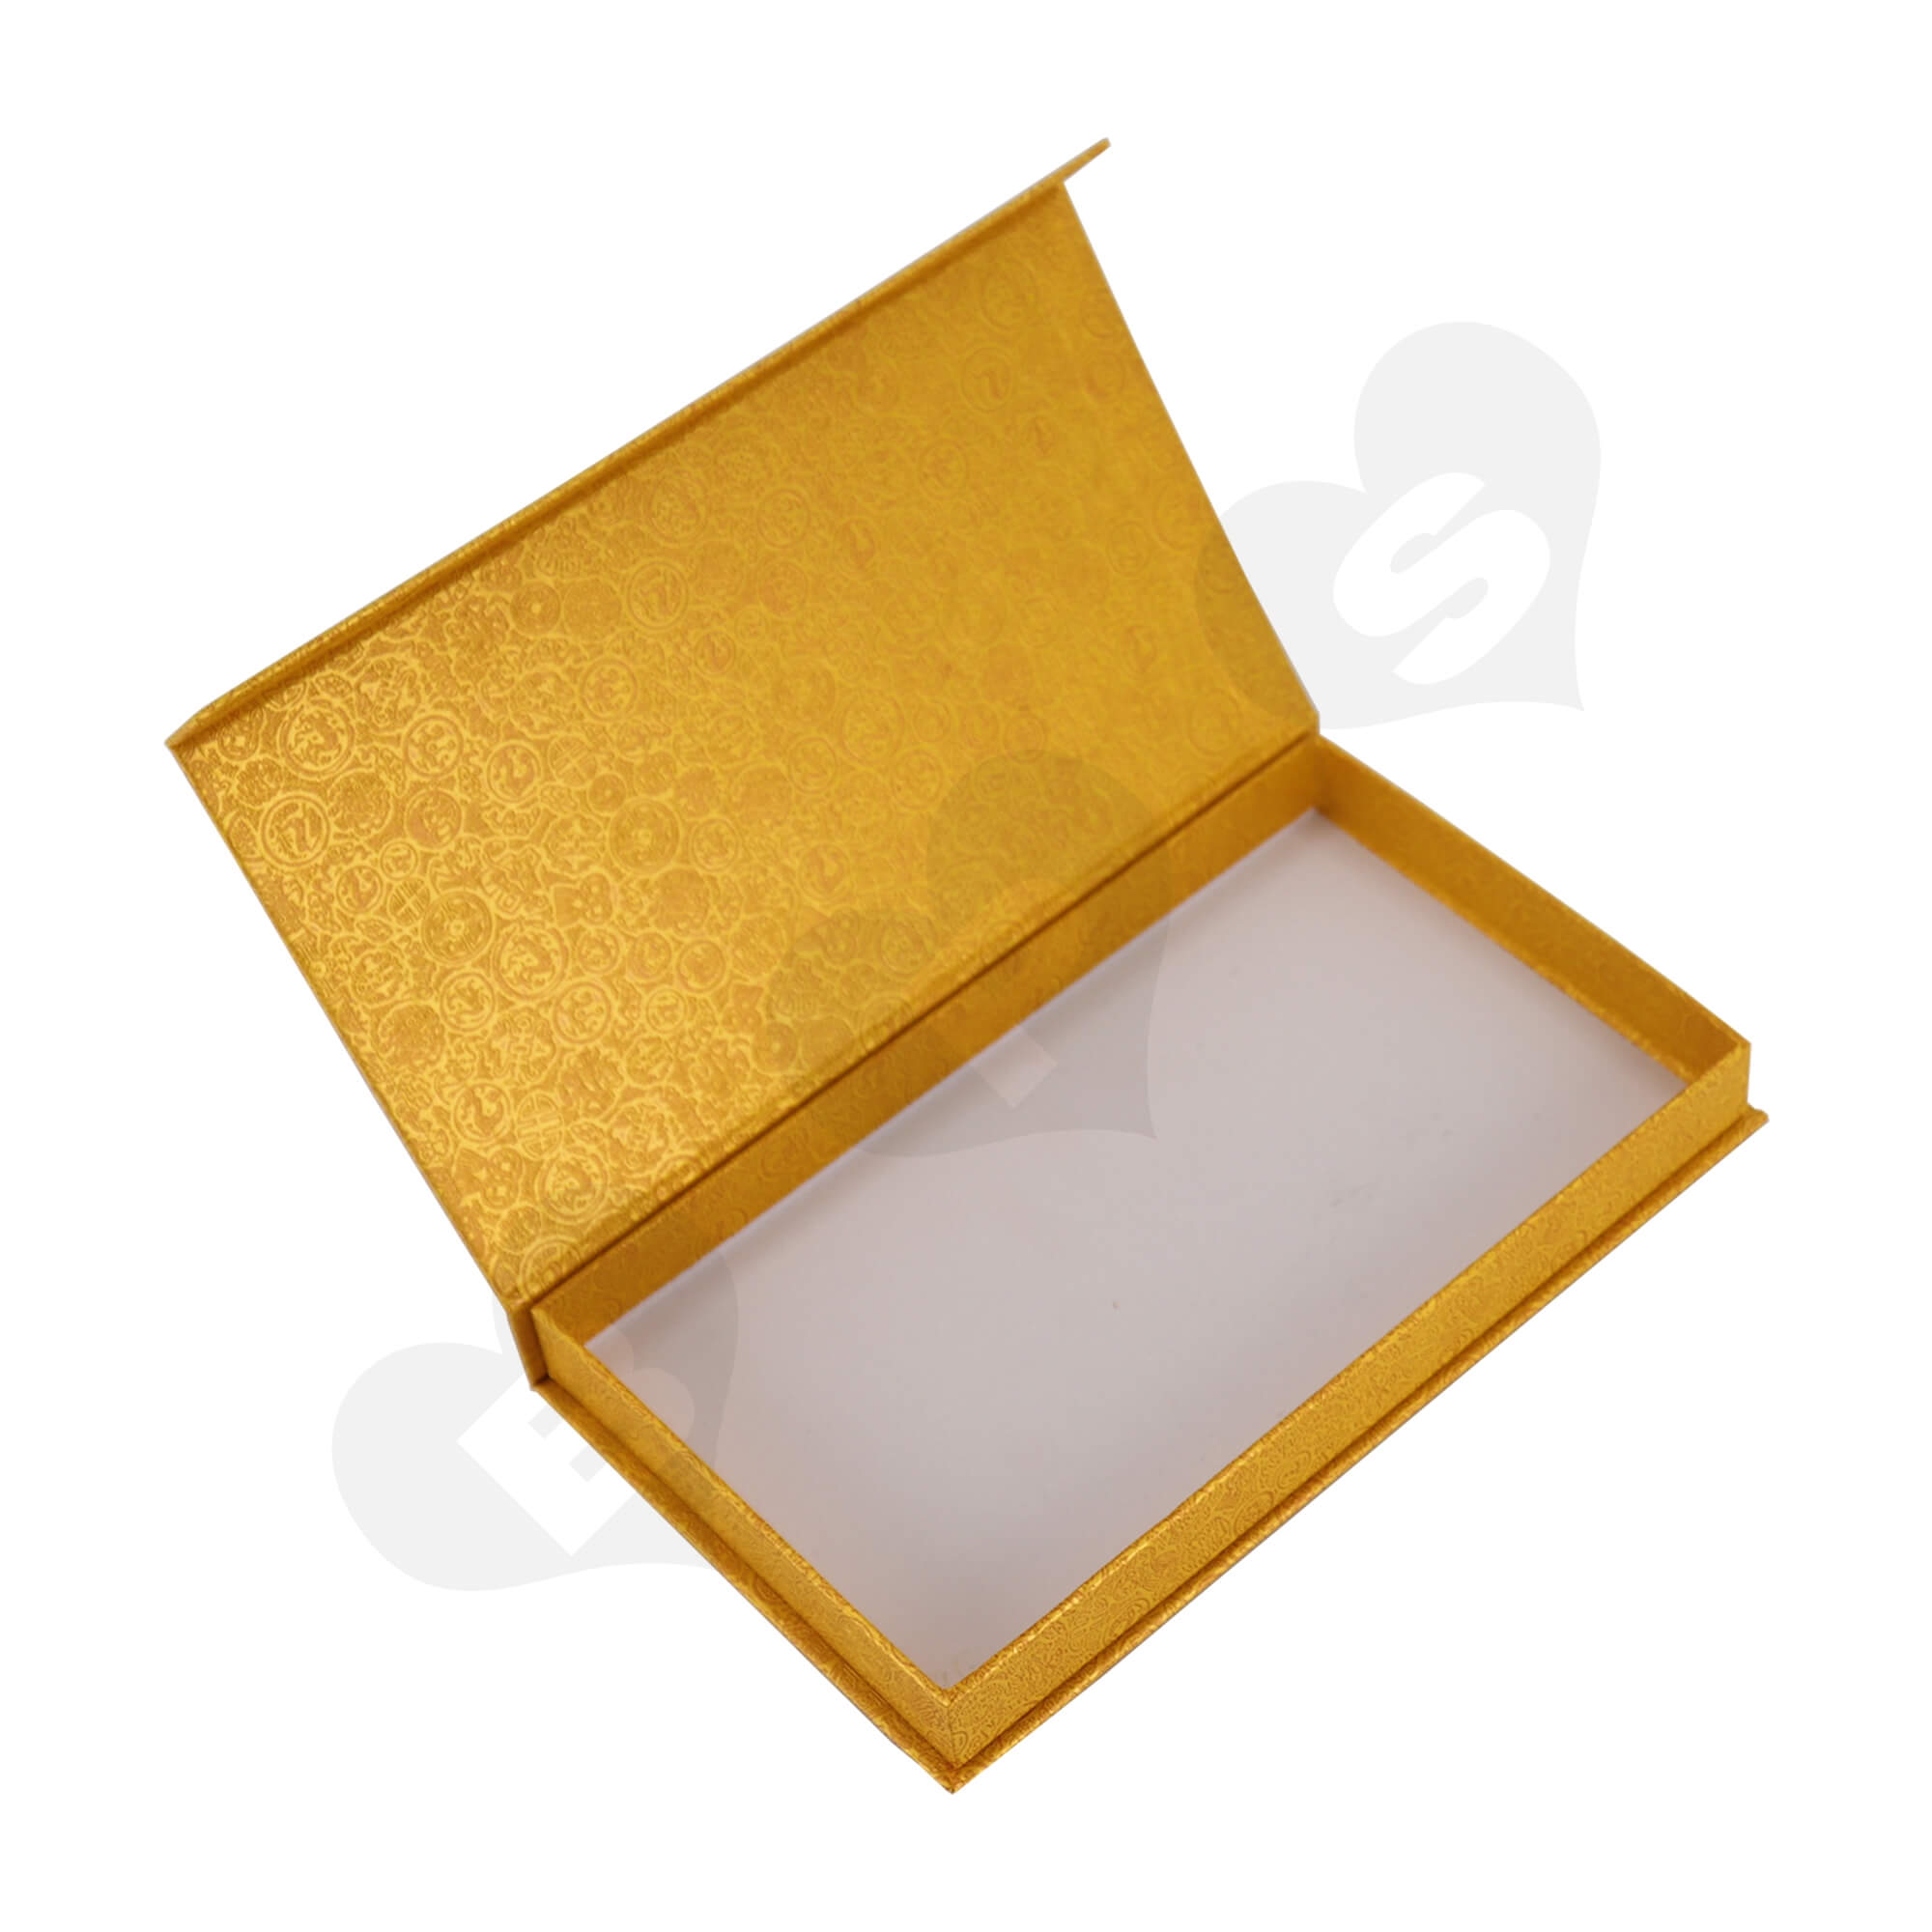 Book Shape Gift Box For Packing Blended Fragrance Side View Six